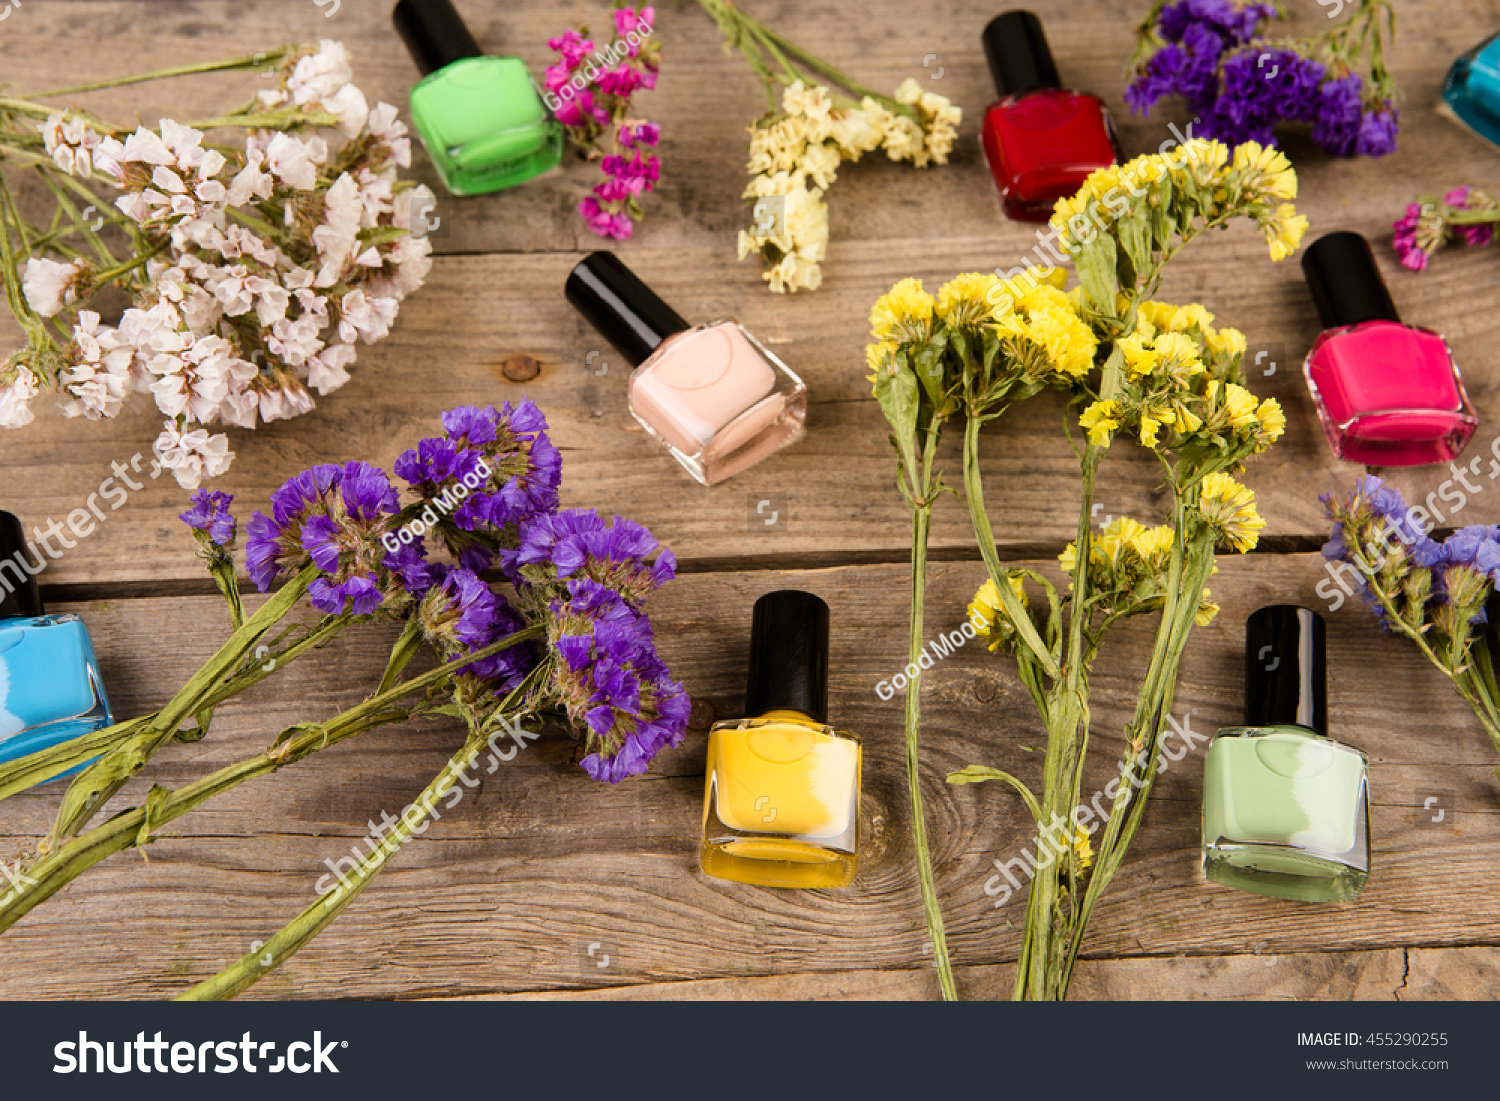 Bottles colorful nail polish flowers on stock photo 455290255 bottles of colorful nail polish and flowers on brown wooden table izmirmasajfo